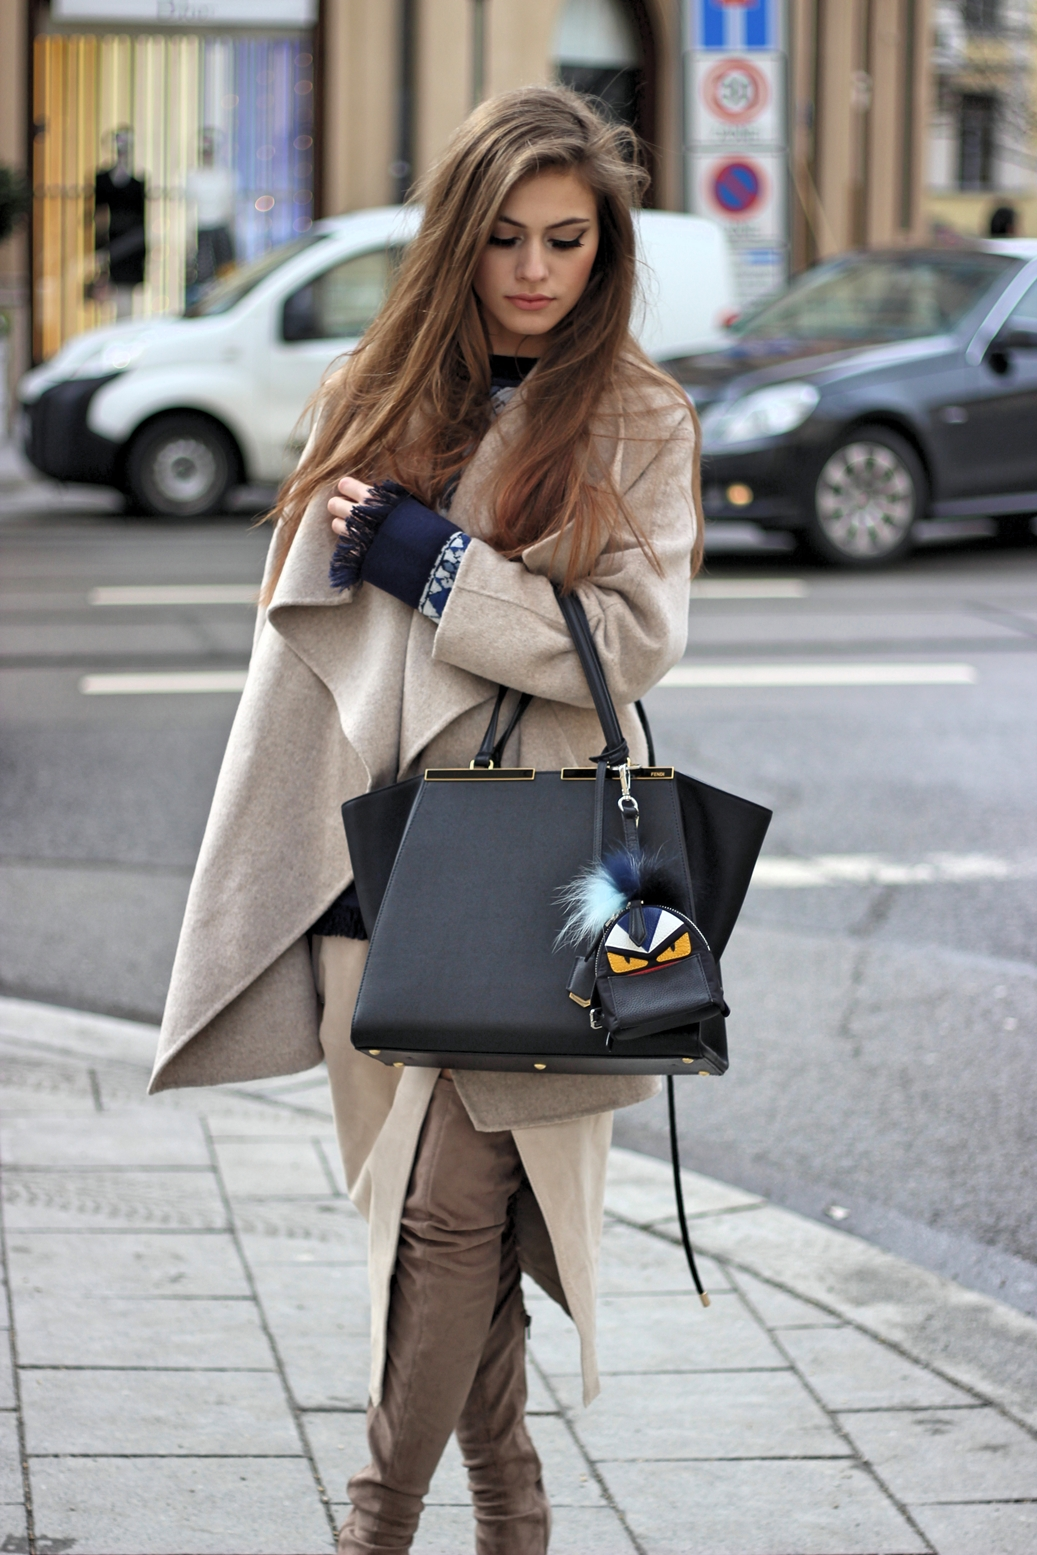 zara-outfit-streetstyle-look-fashion-blog-fendi-bag-germany-munich